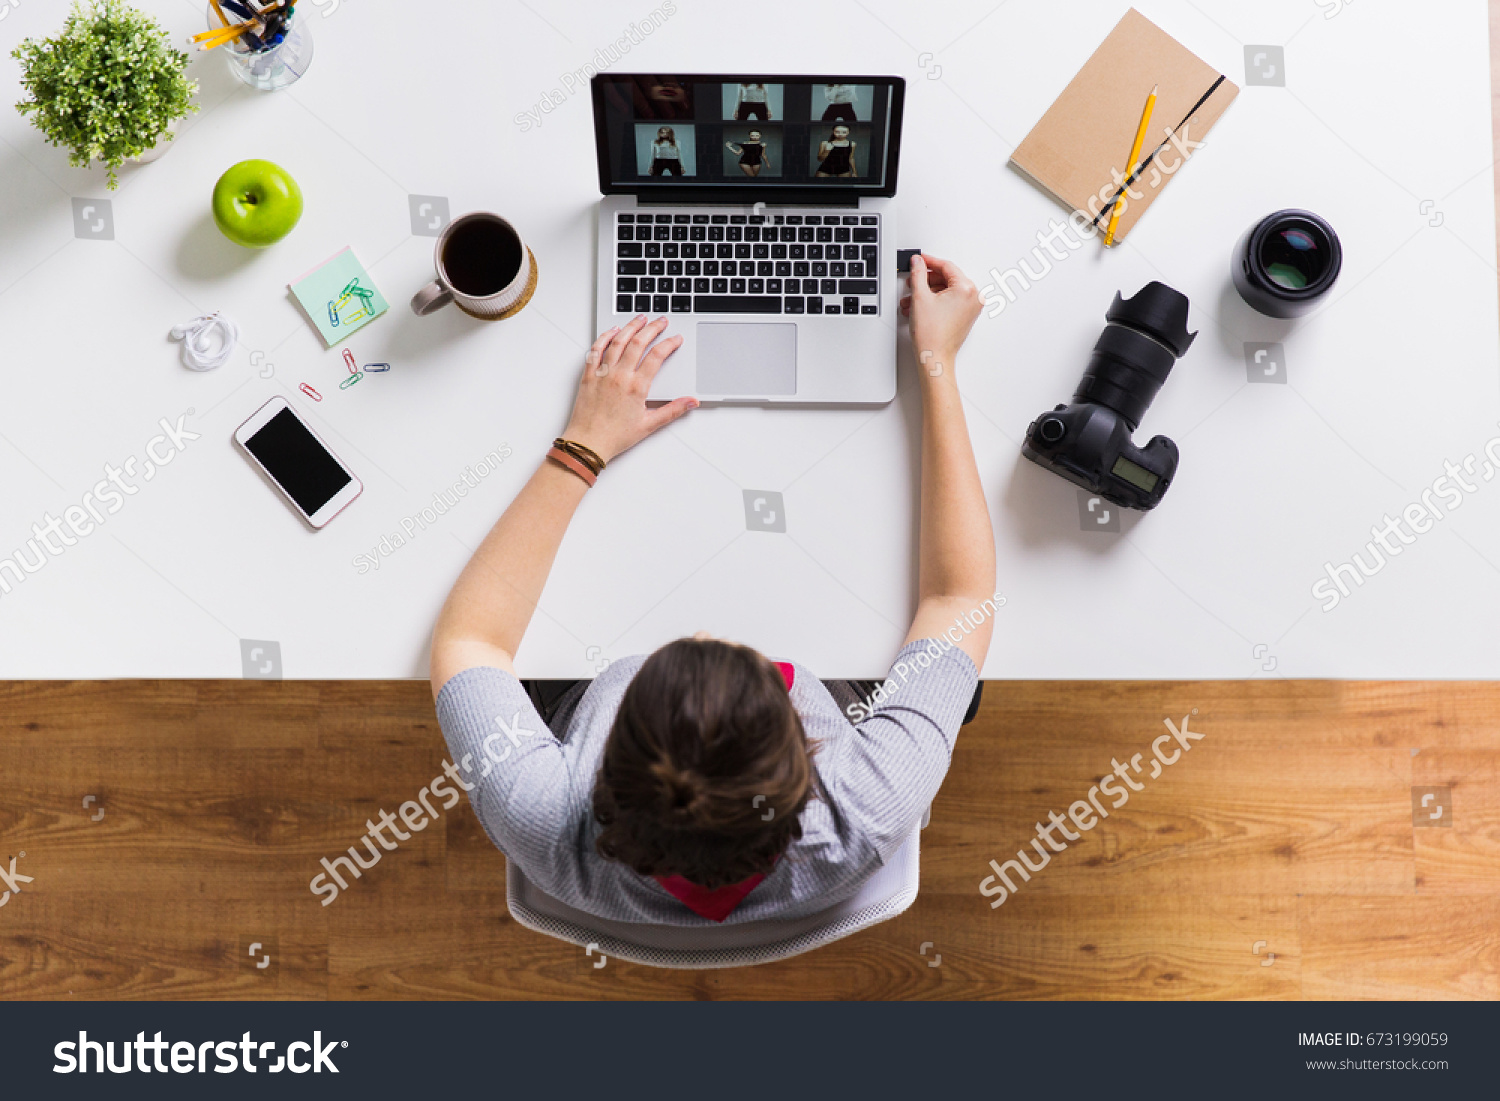 photography, people and technology concept - woman inserting camera flash drive into laptop computer at office table #673199059